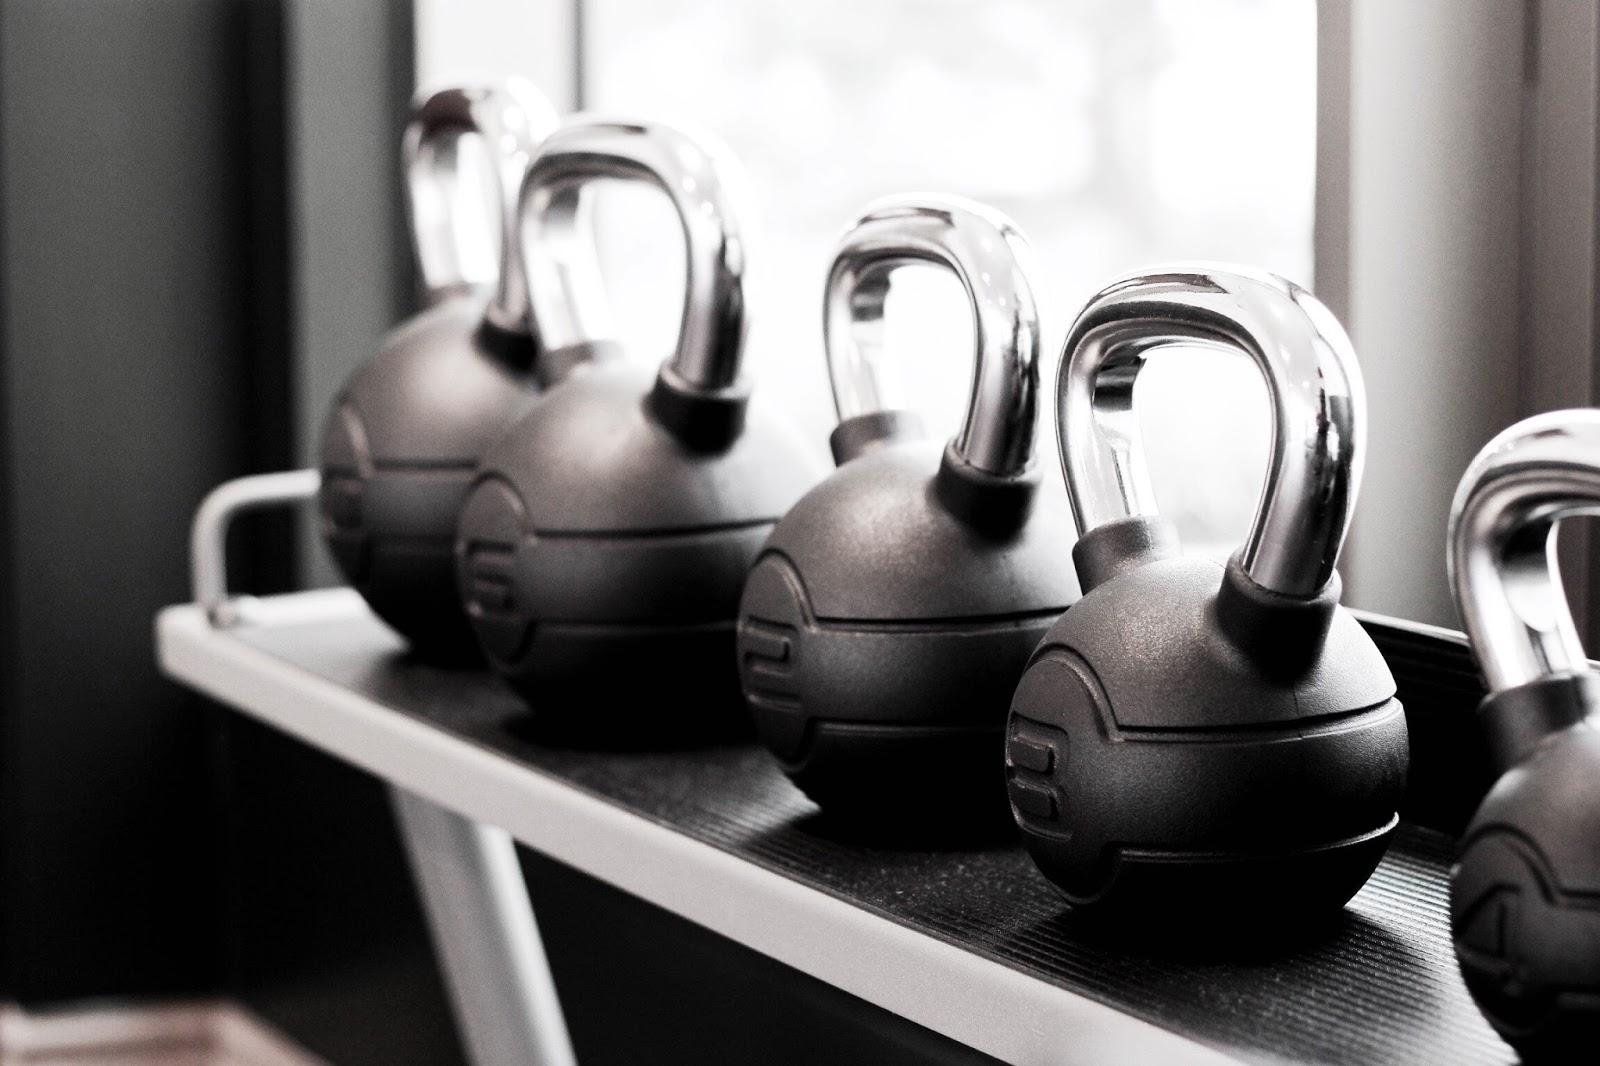 Line of kettlebells at hotel gym